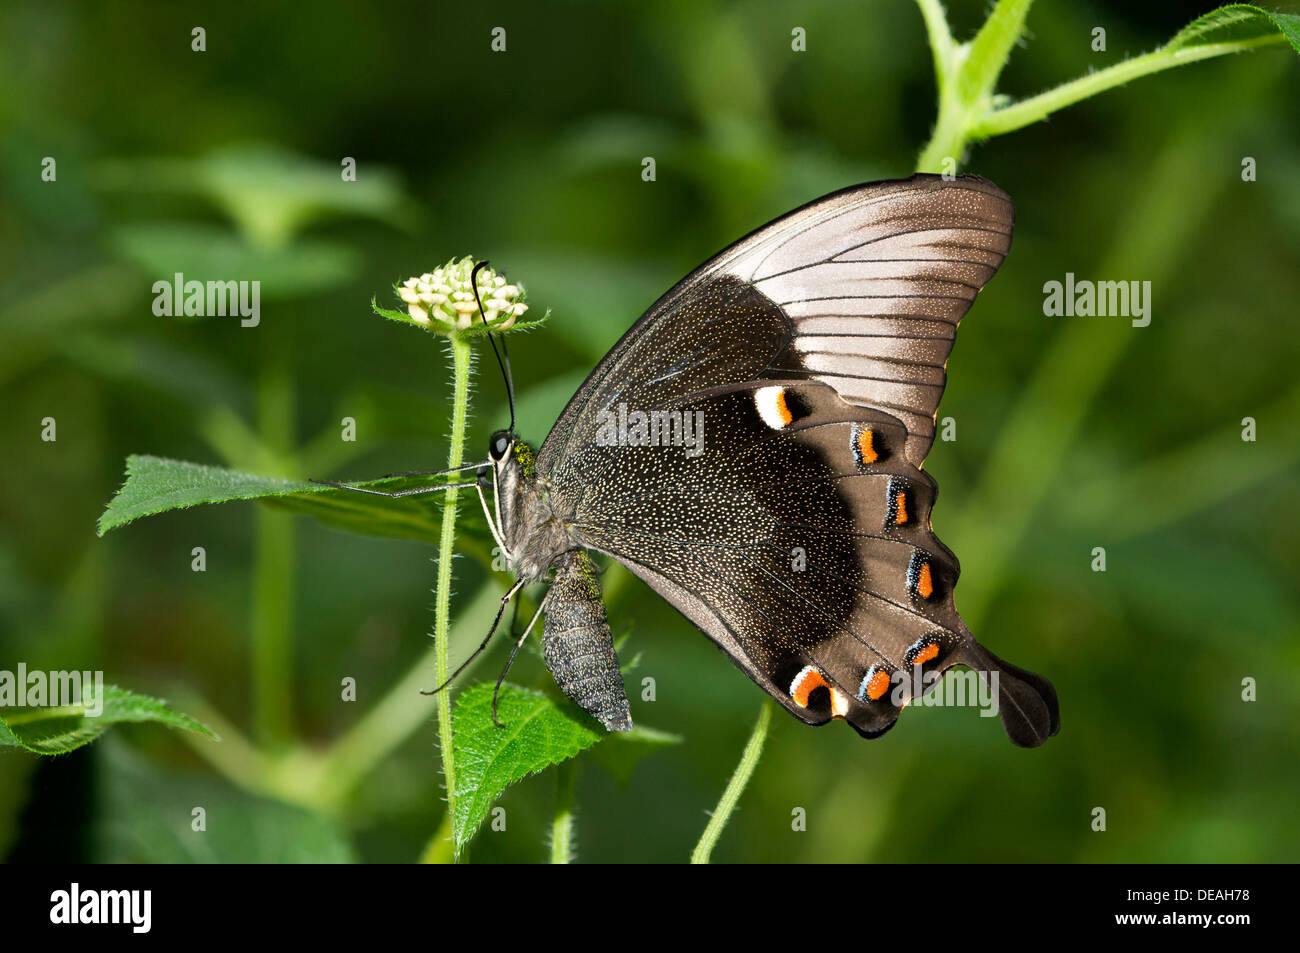 Ulysses butterfly, Blue Mountain Swallowtail or Blue Mountain butterfly (Papilio ulysses), Australia - Stock Image